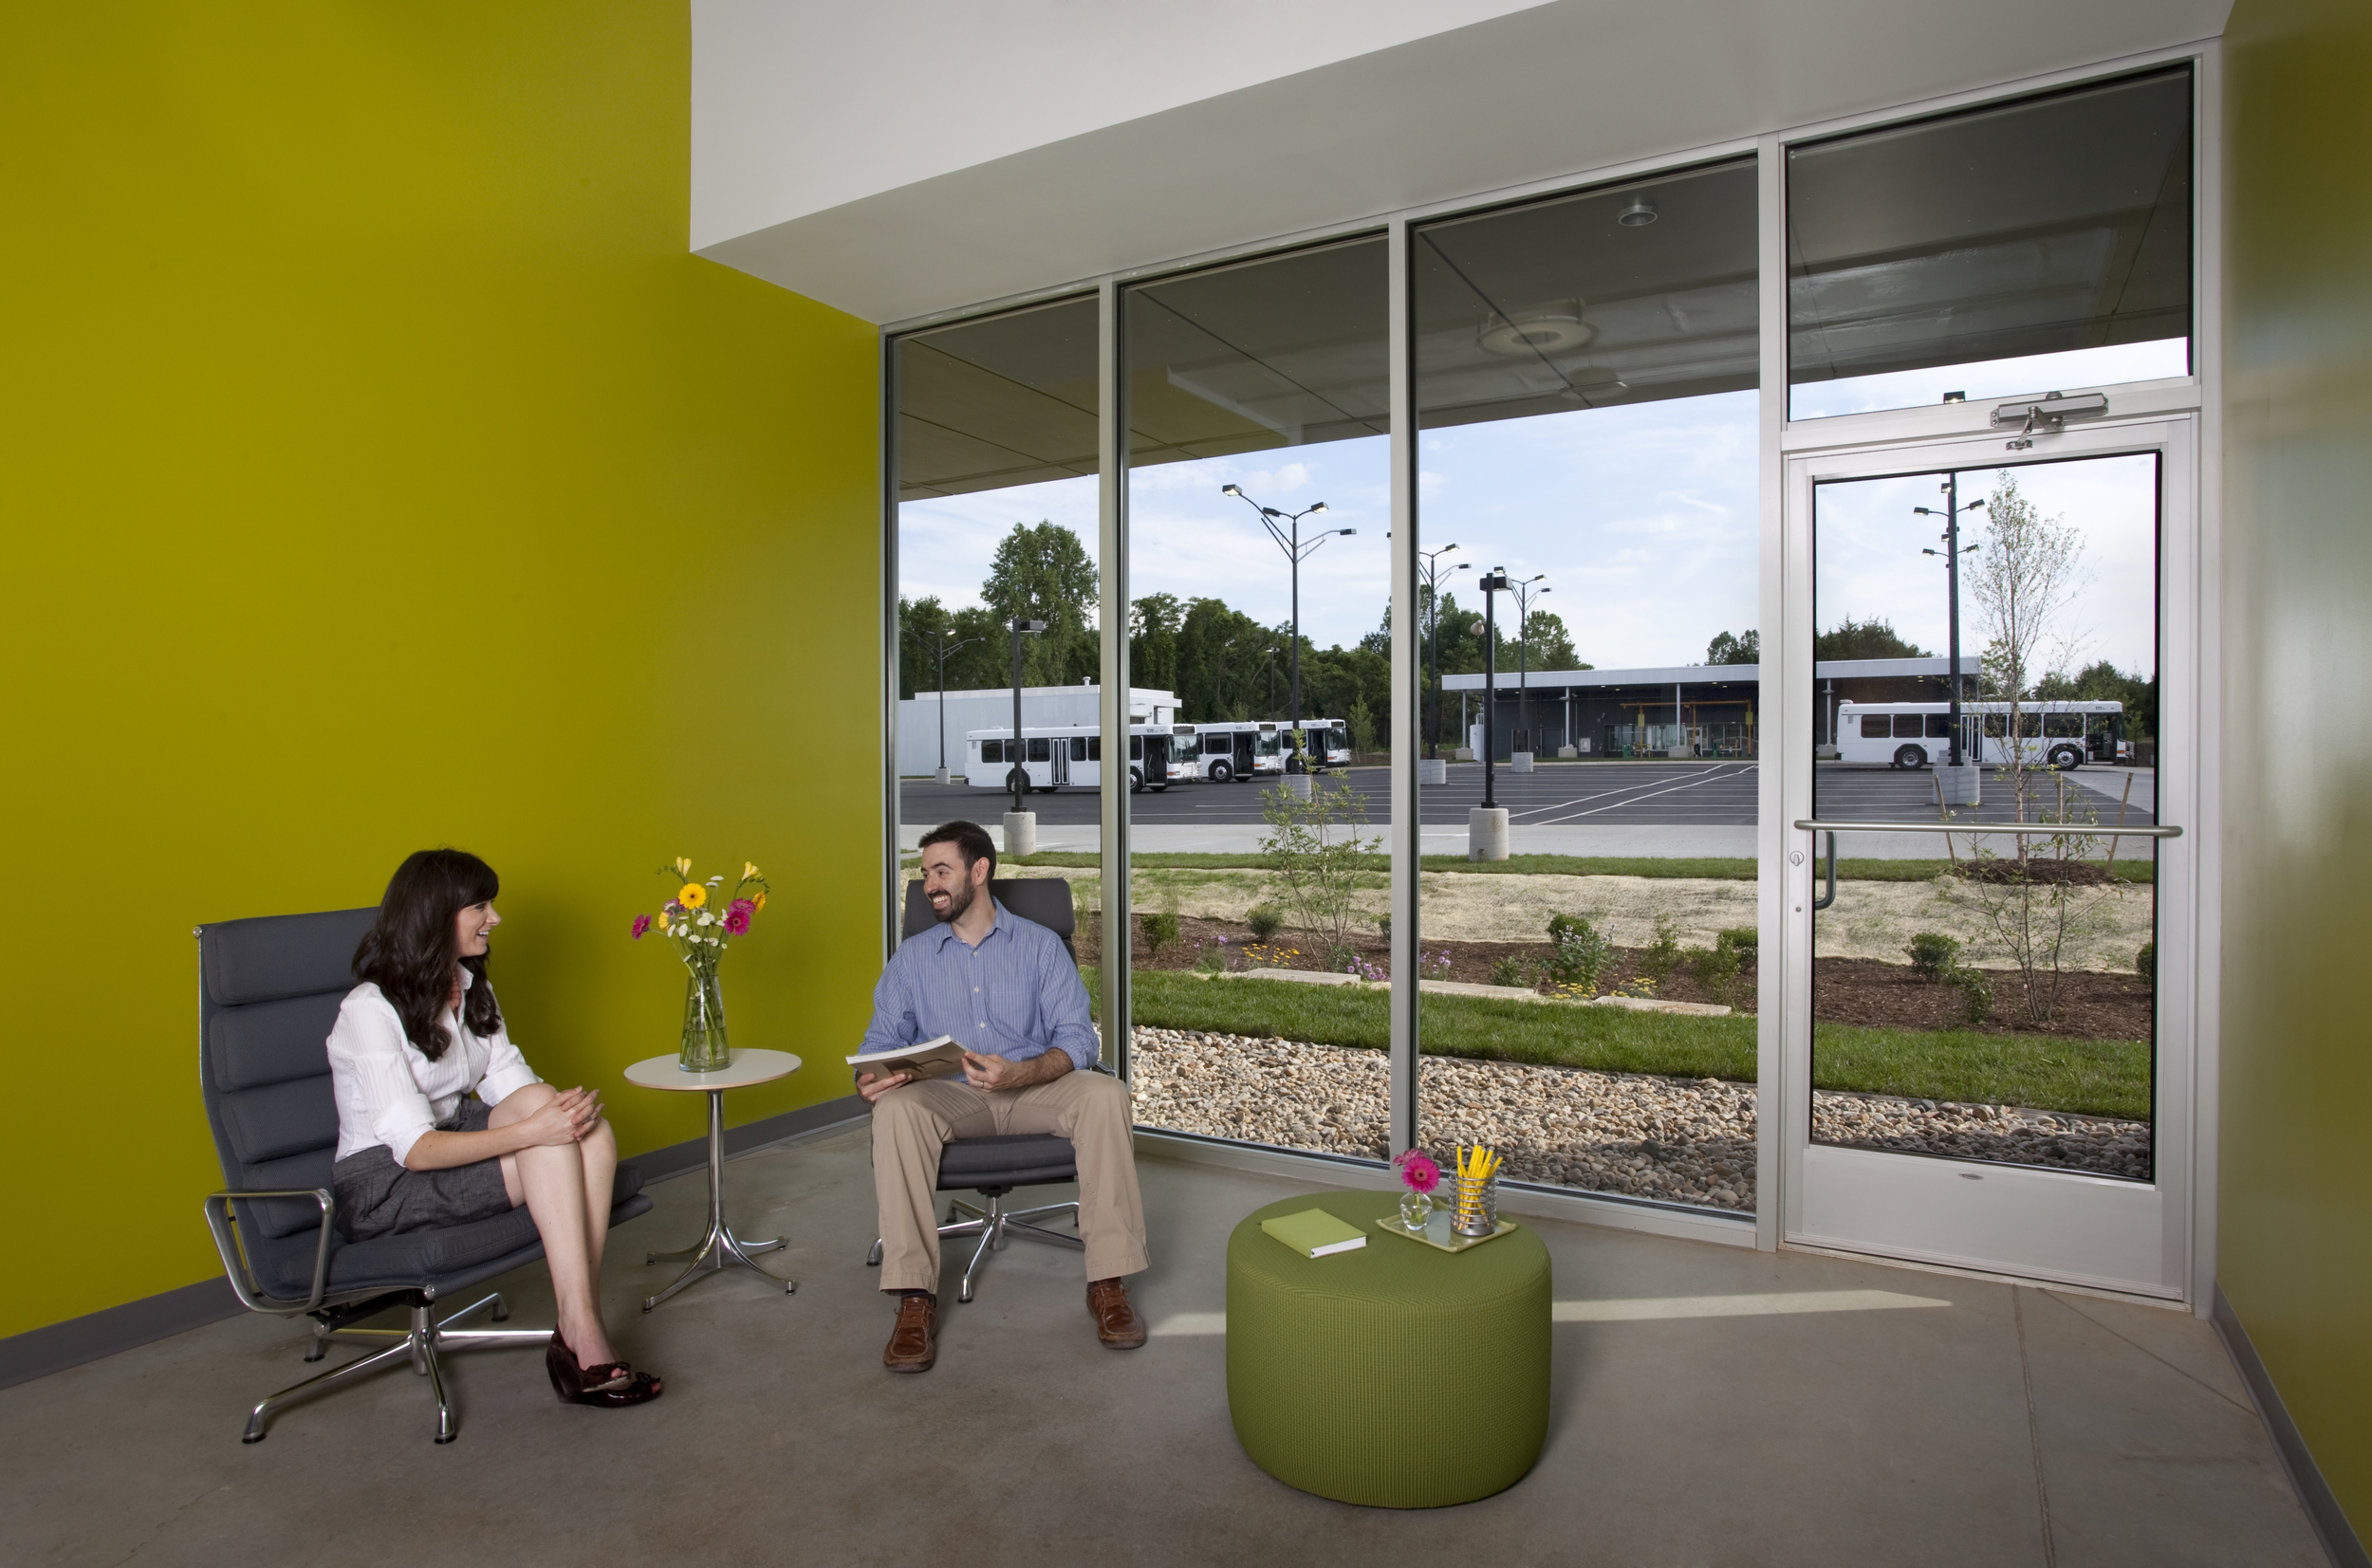 From the staff lounge, employees enjoy simultaneous views of the butterfly garden and the transit vehicle parking area.